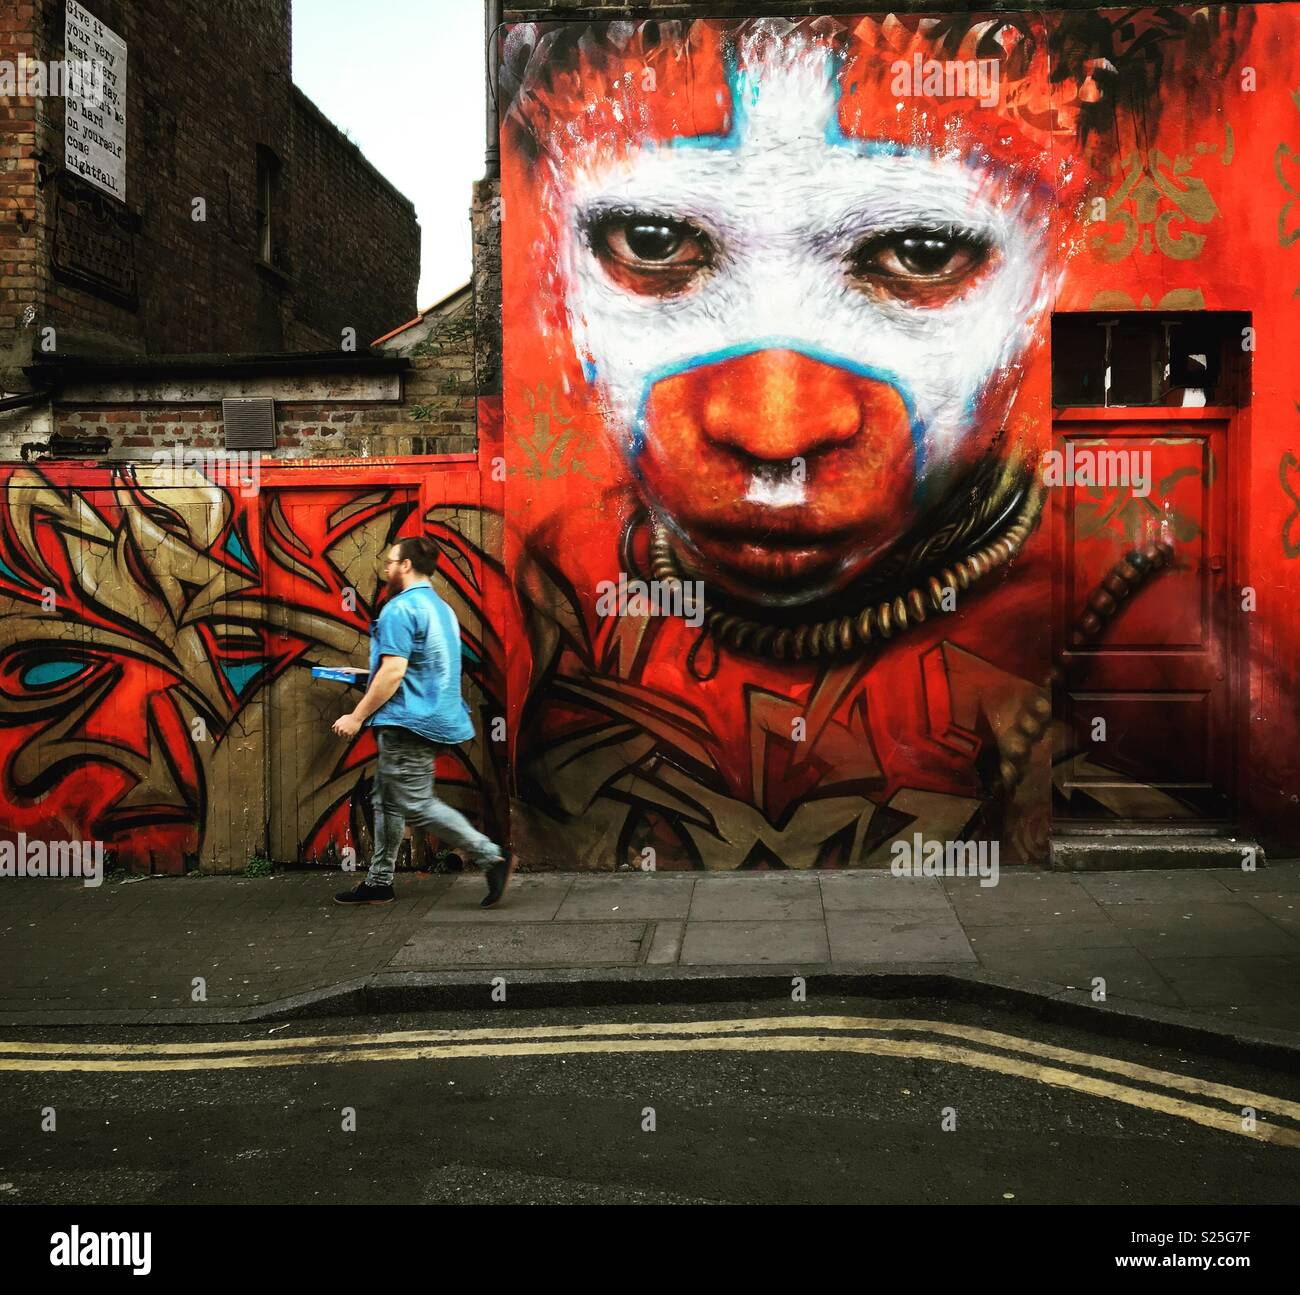 Guy walking past building with street art in East London - Stock Image